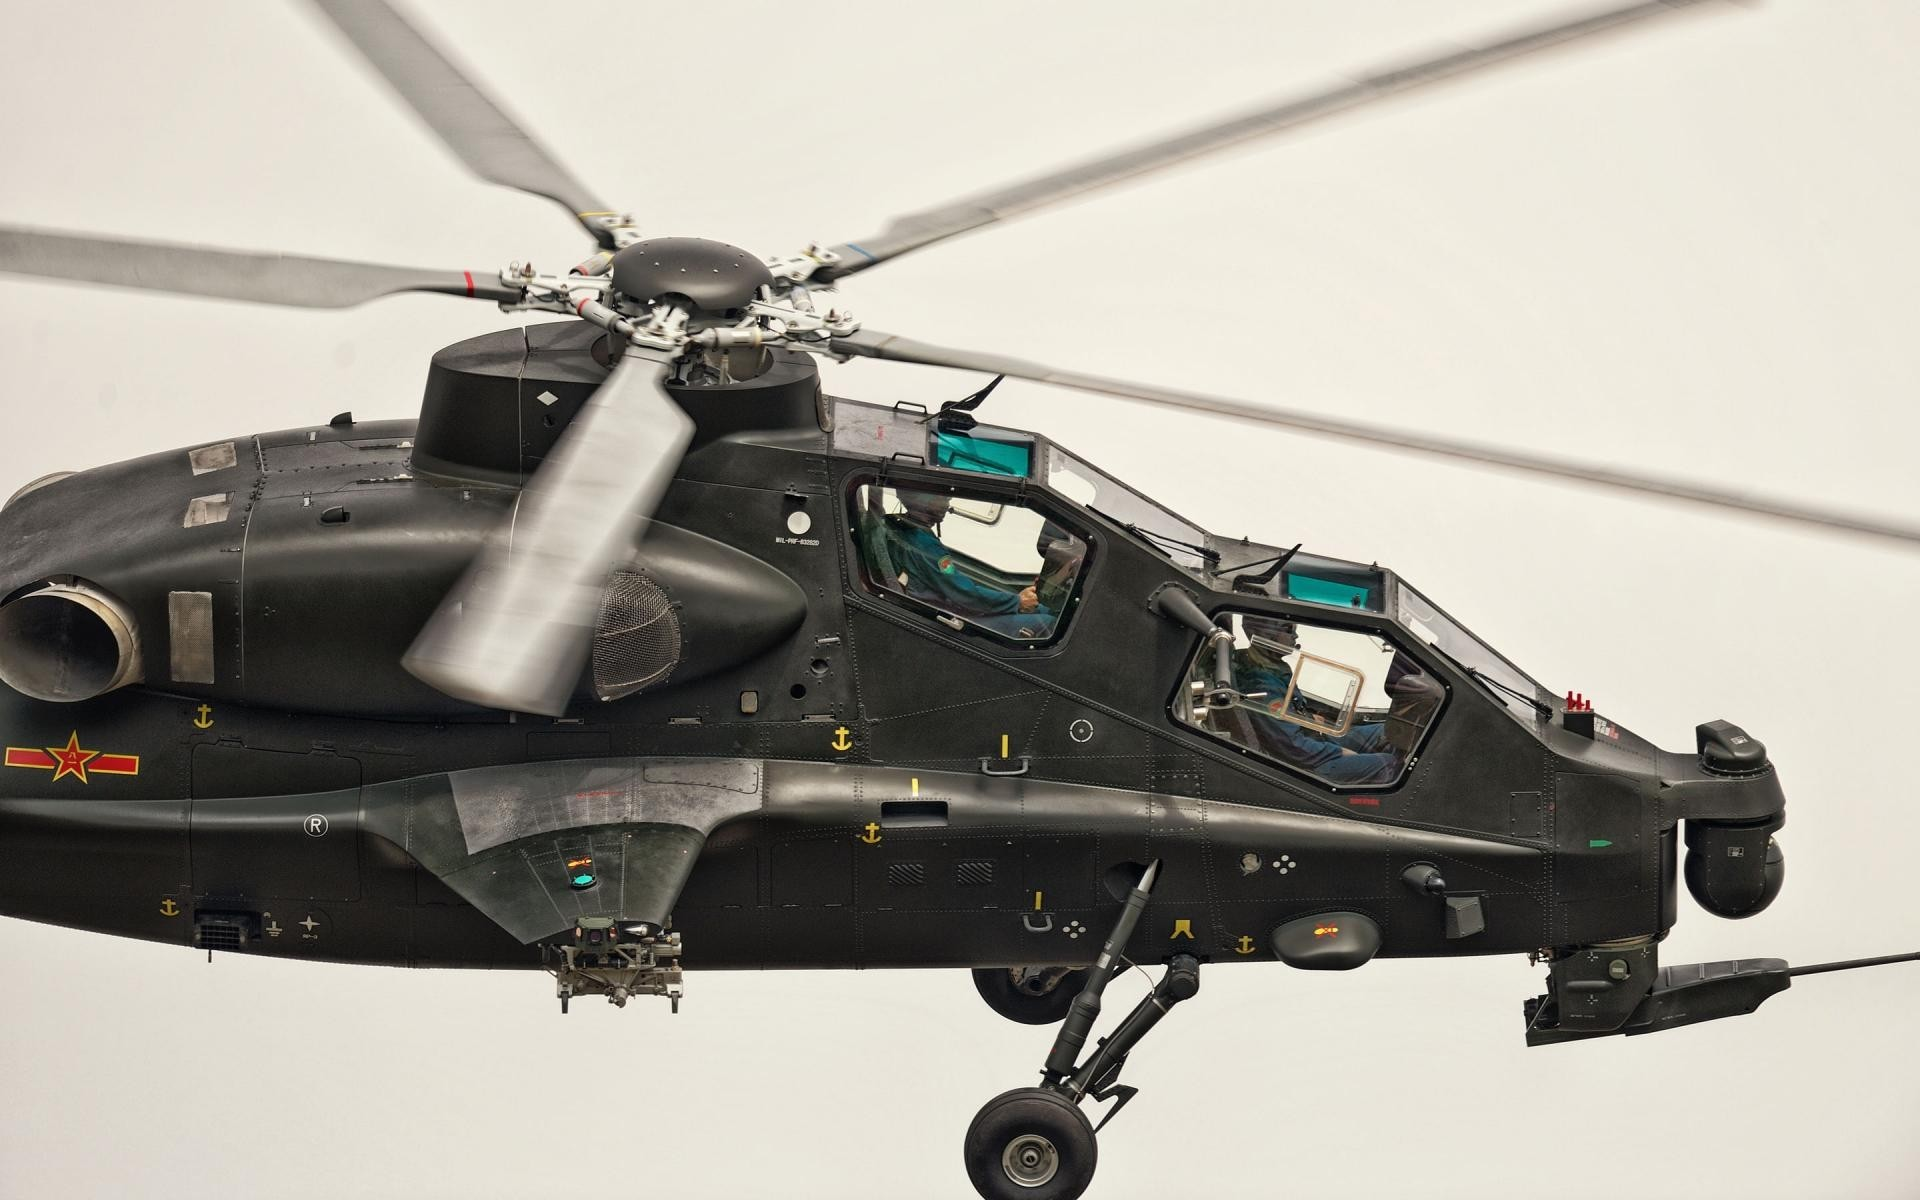 2852777-caic-z-10-helicopters-aircraft-military-aircraft___military-wallpapers.jpg